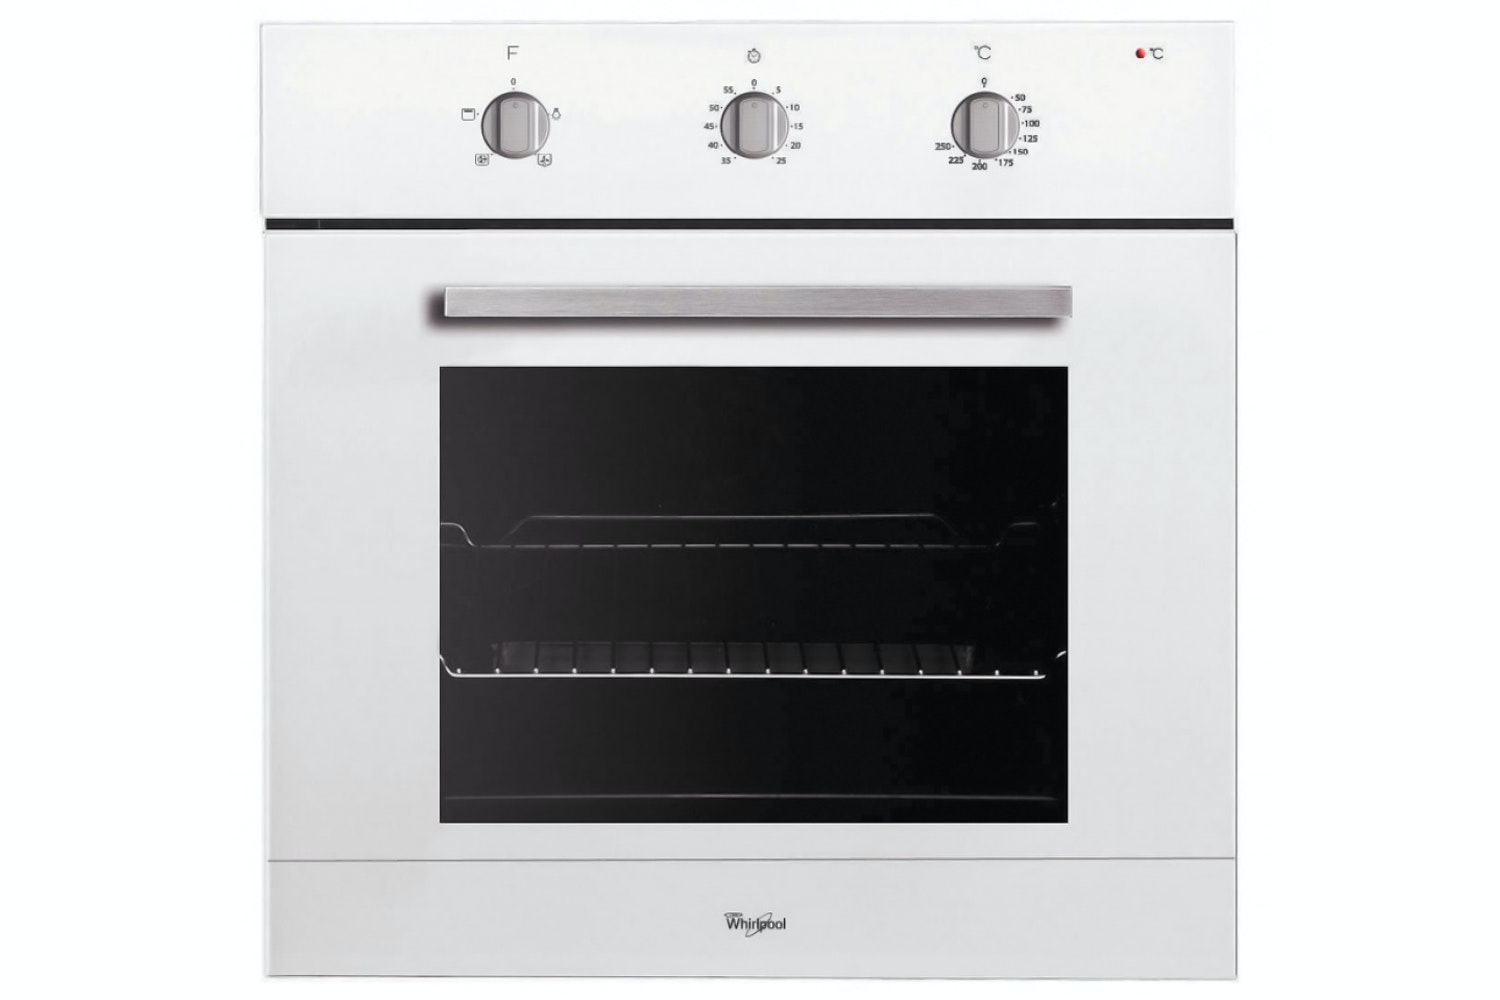 Whirlpool Built-in Single Oven | AKP436/WH